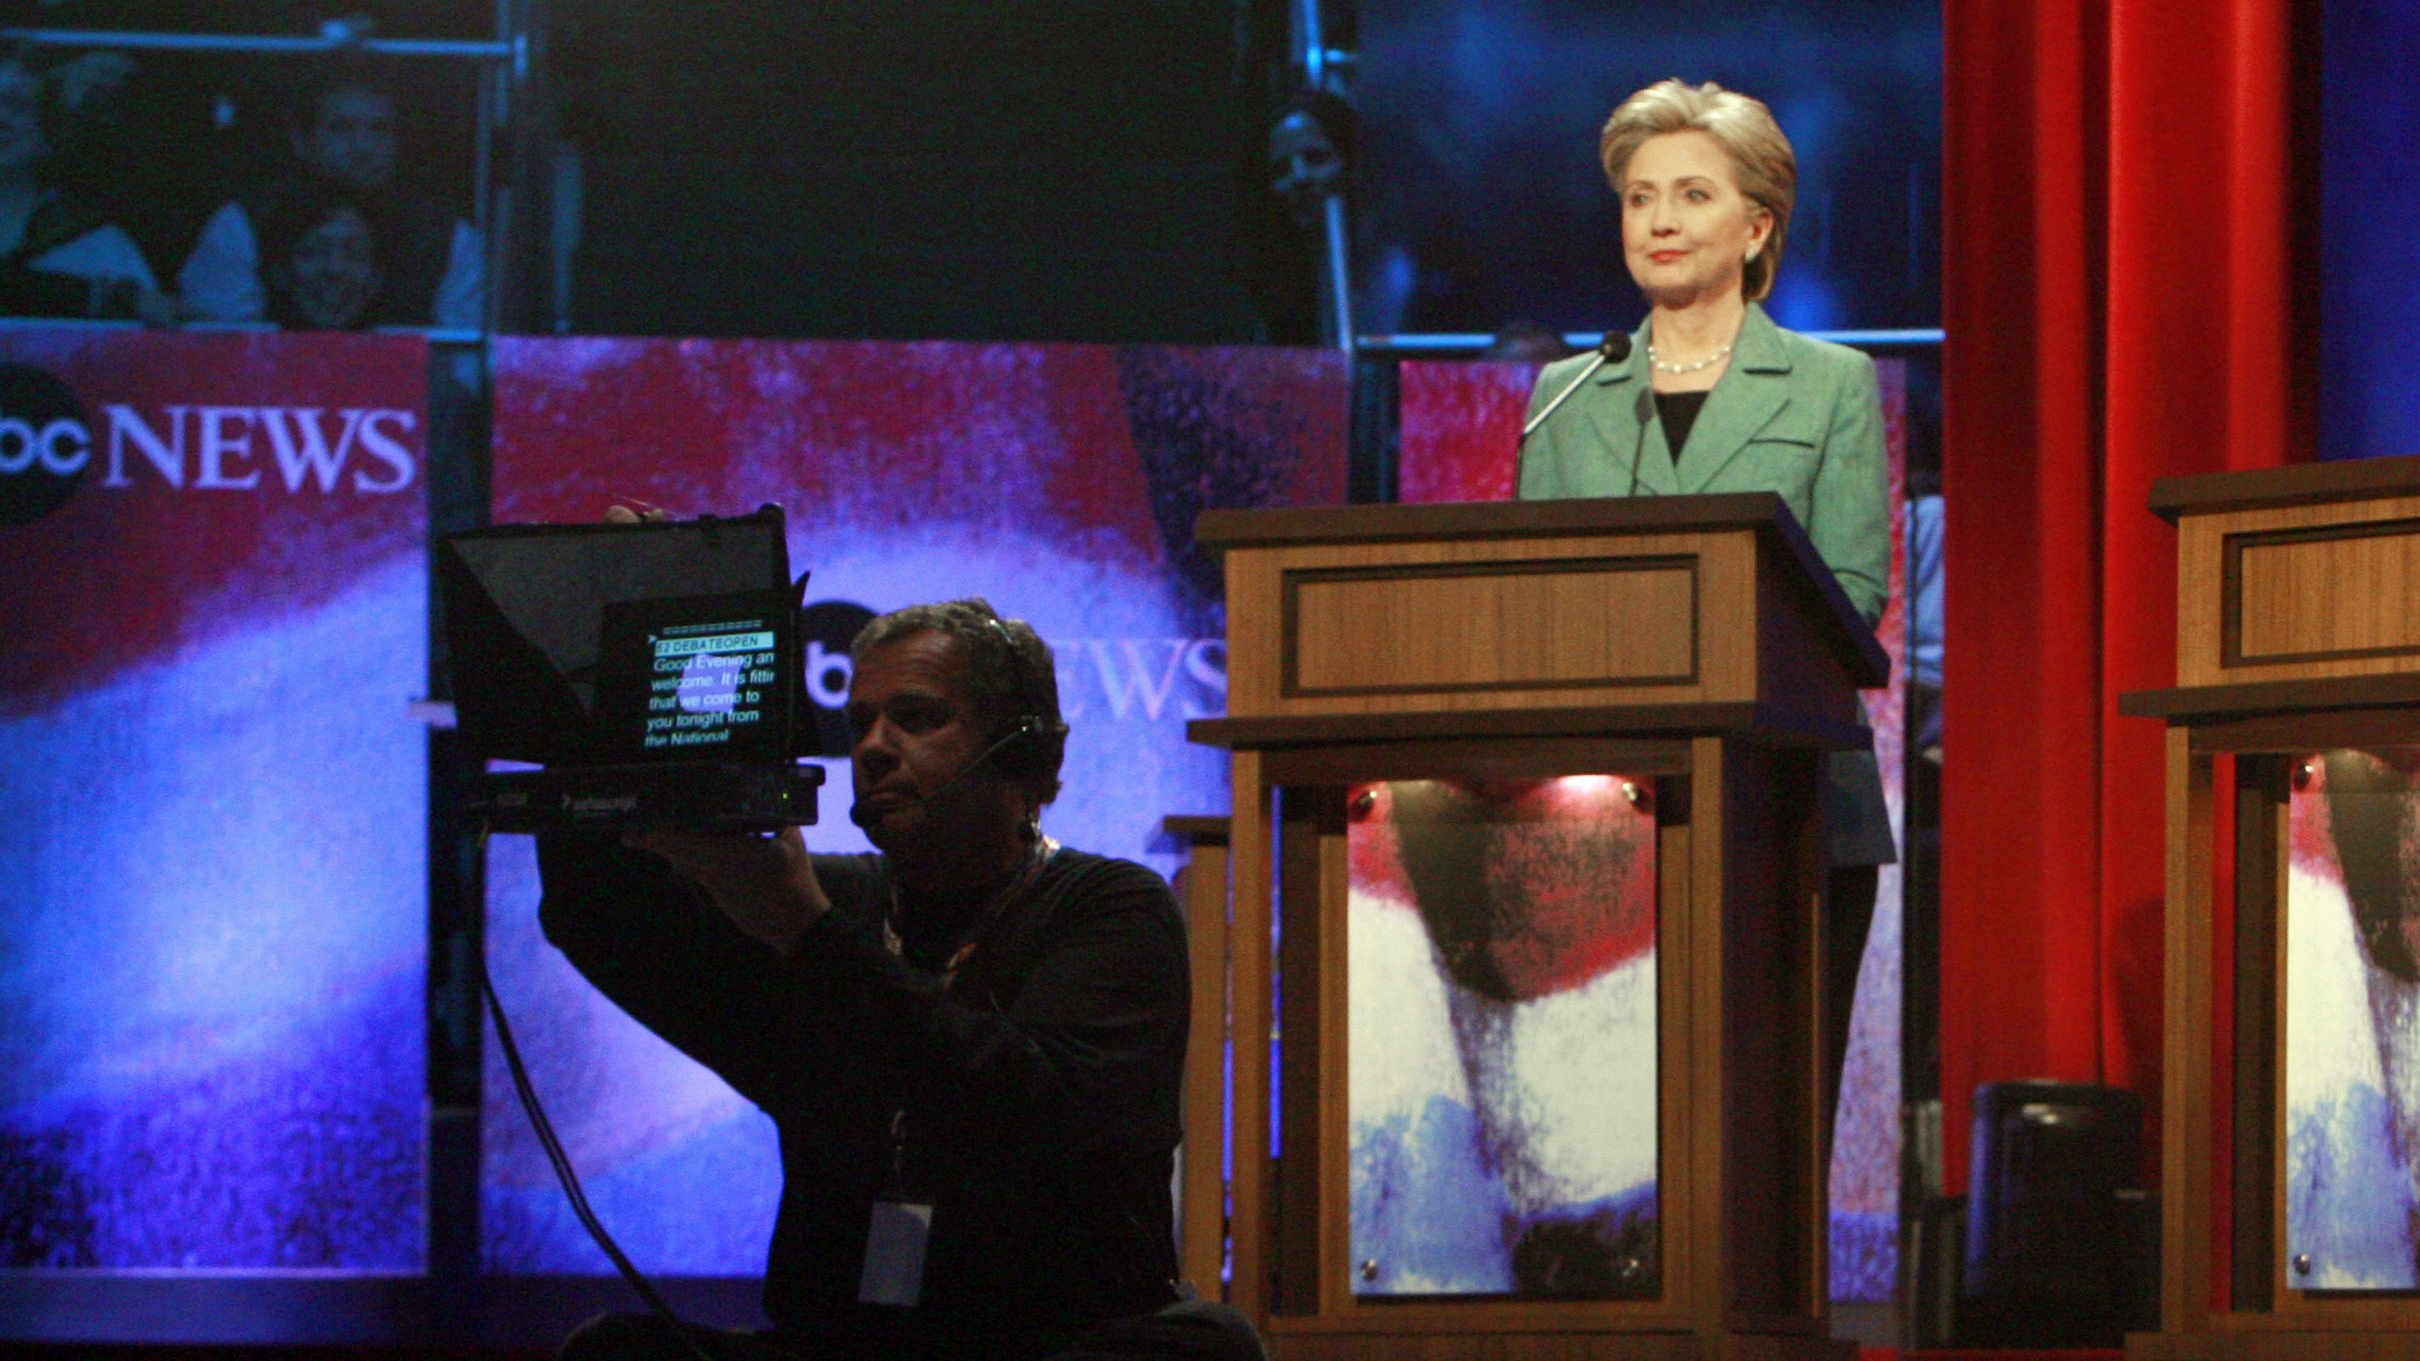 Hillary Clinton participated in 25 primary debates during her 2008 campaign — experience that should serve her well on Tuesday night. But she still has to appear likable and at ease on stage this time. (Photo by Matt Rourke/AP)